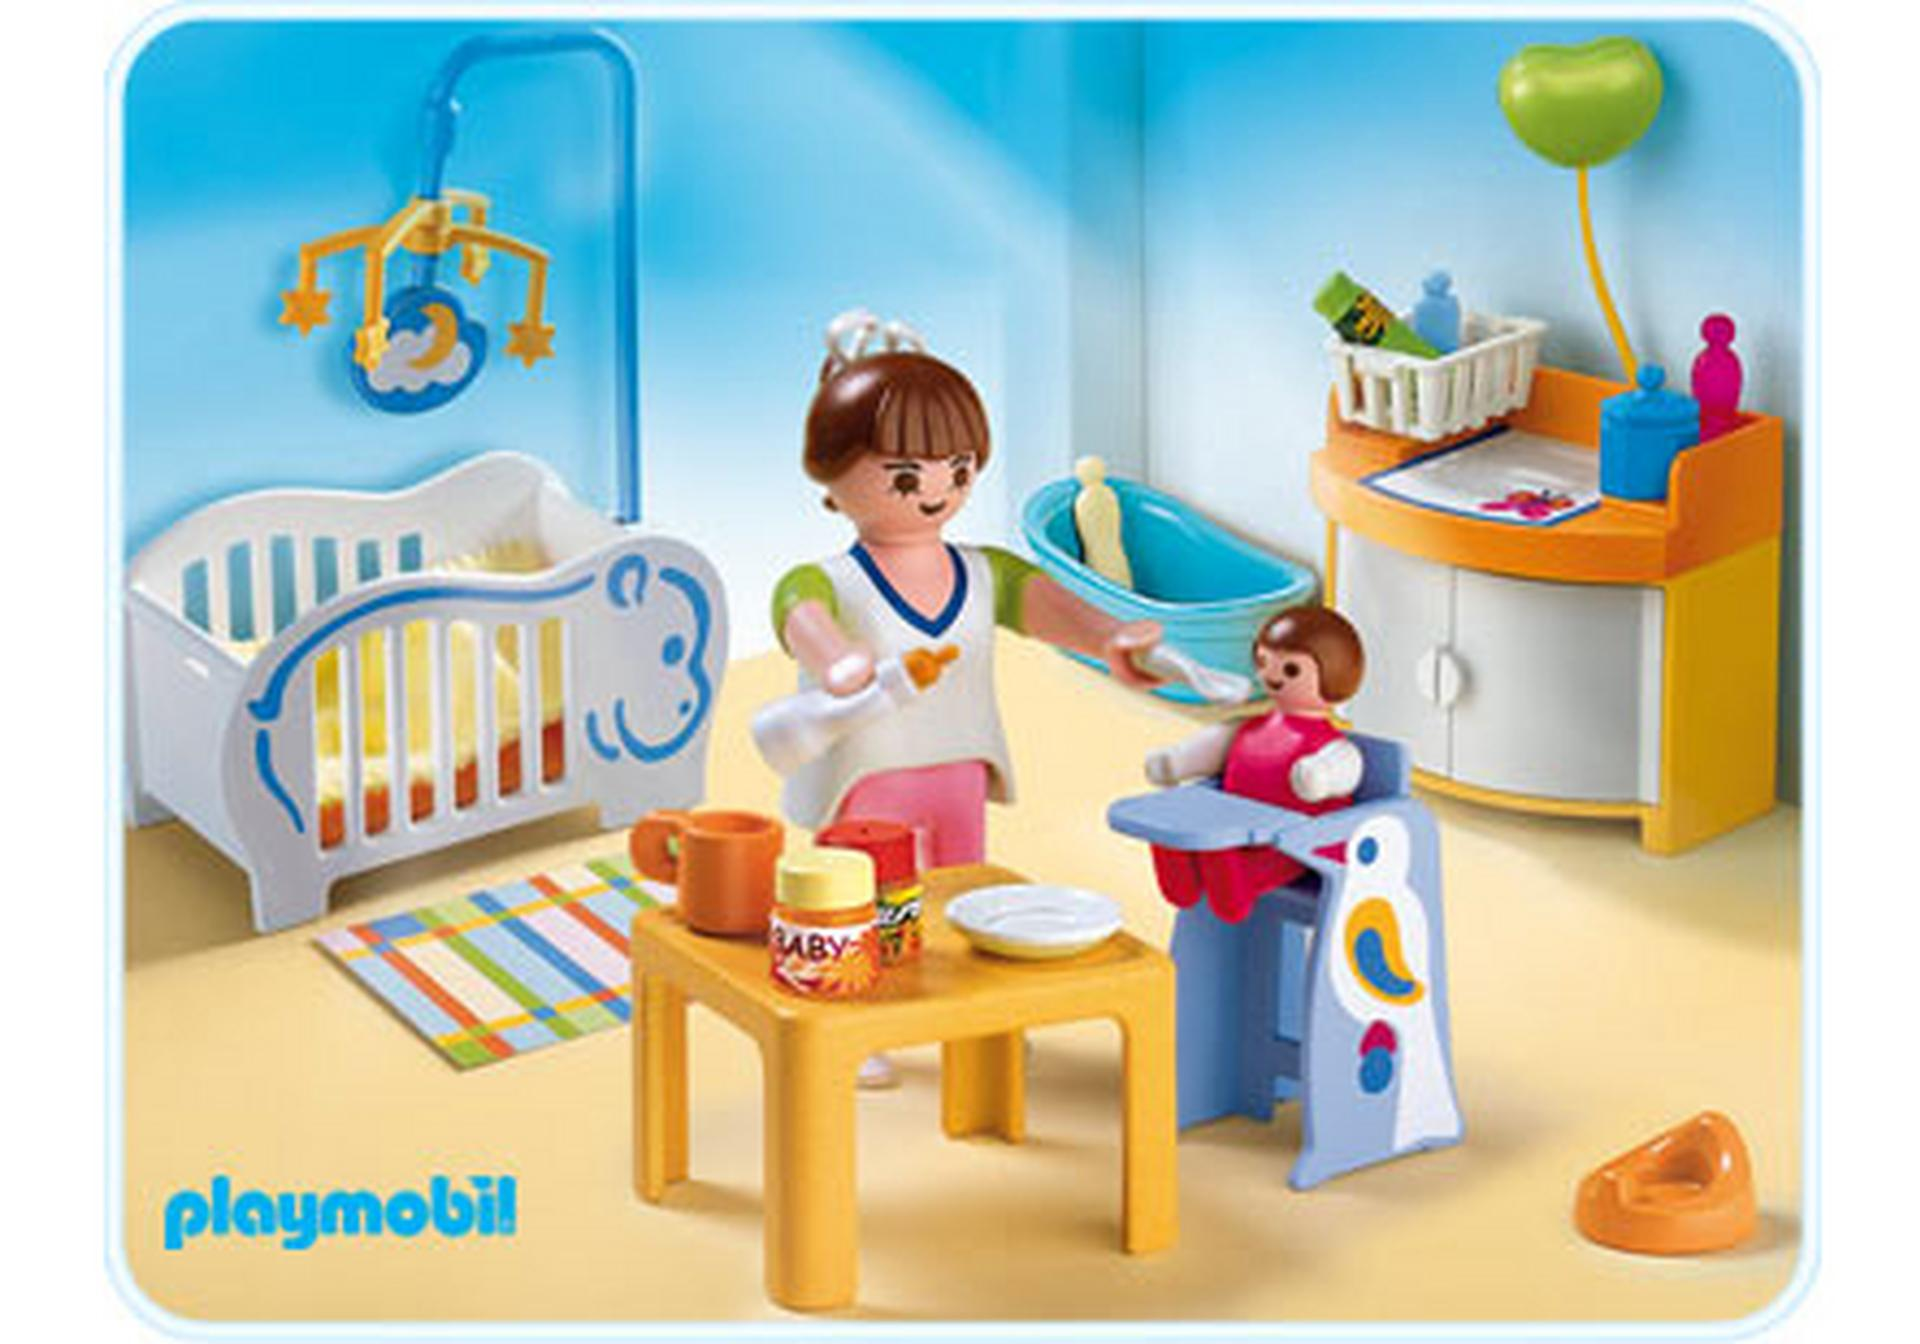 Chambre de b b 4286 a playmobil france for Playmobil chambre enfant